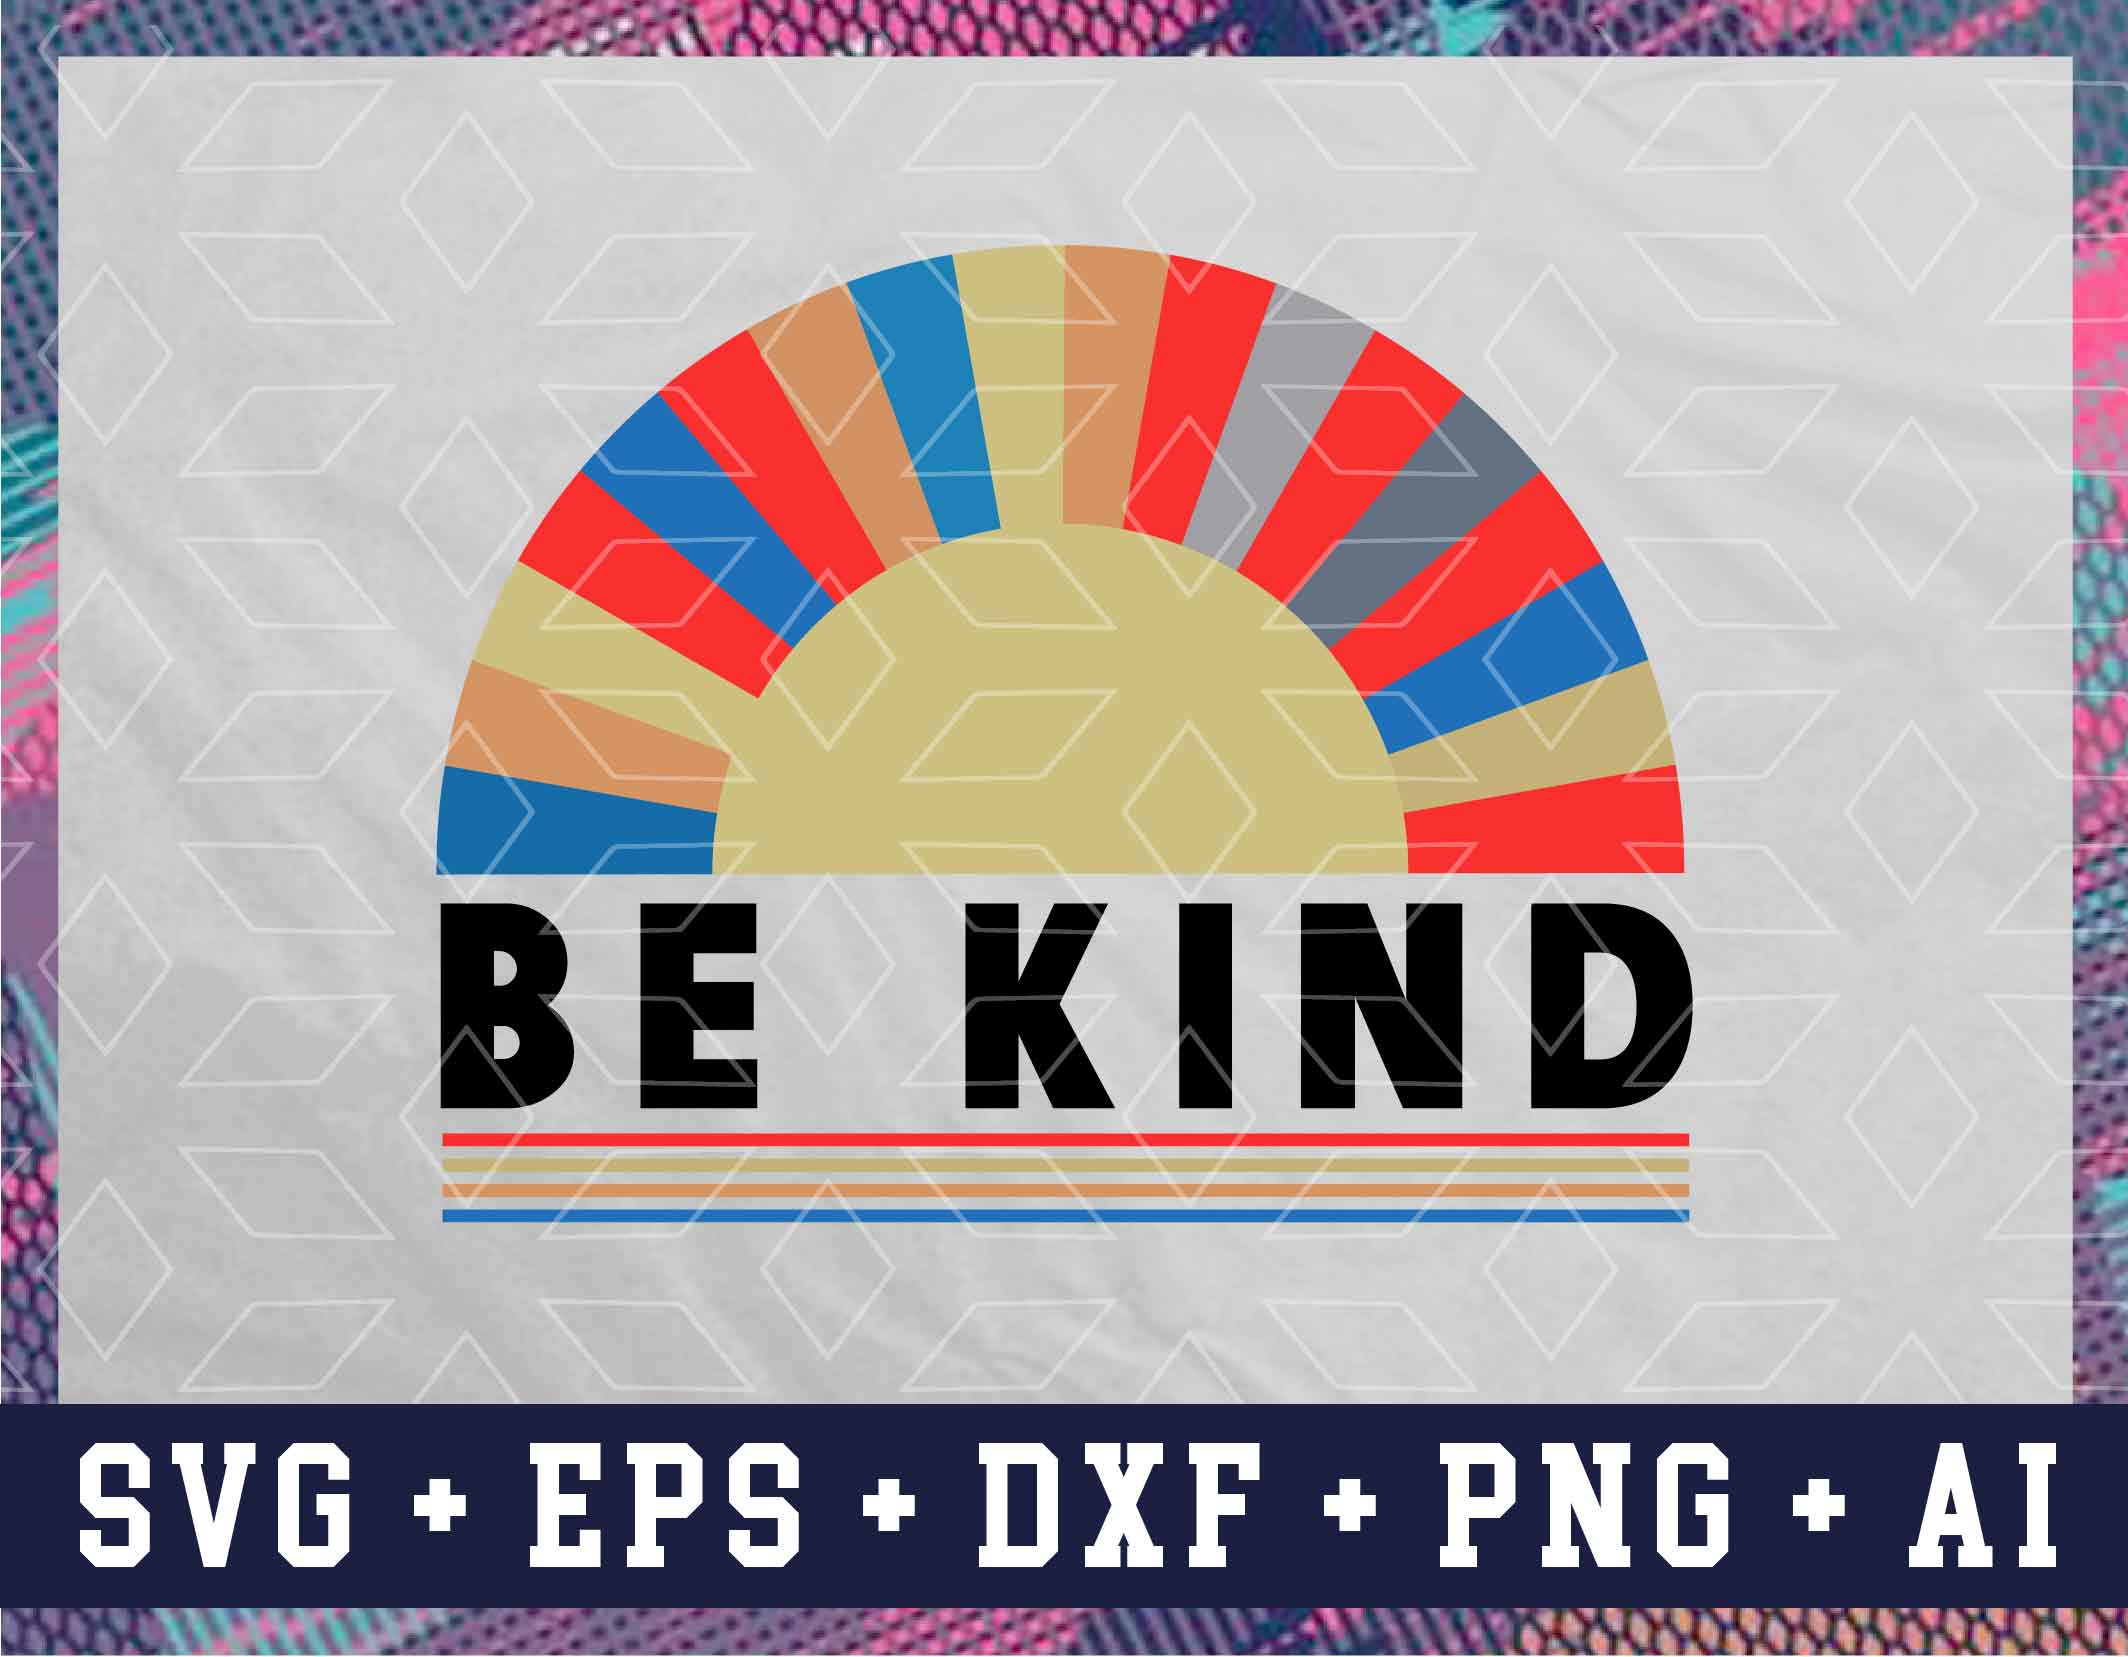 groovy Clipart Png Sublimation Downloads psychedelic Vintage Sublimations Shirt Design Retro Sublimations peace Designs Downloads